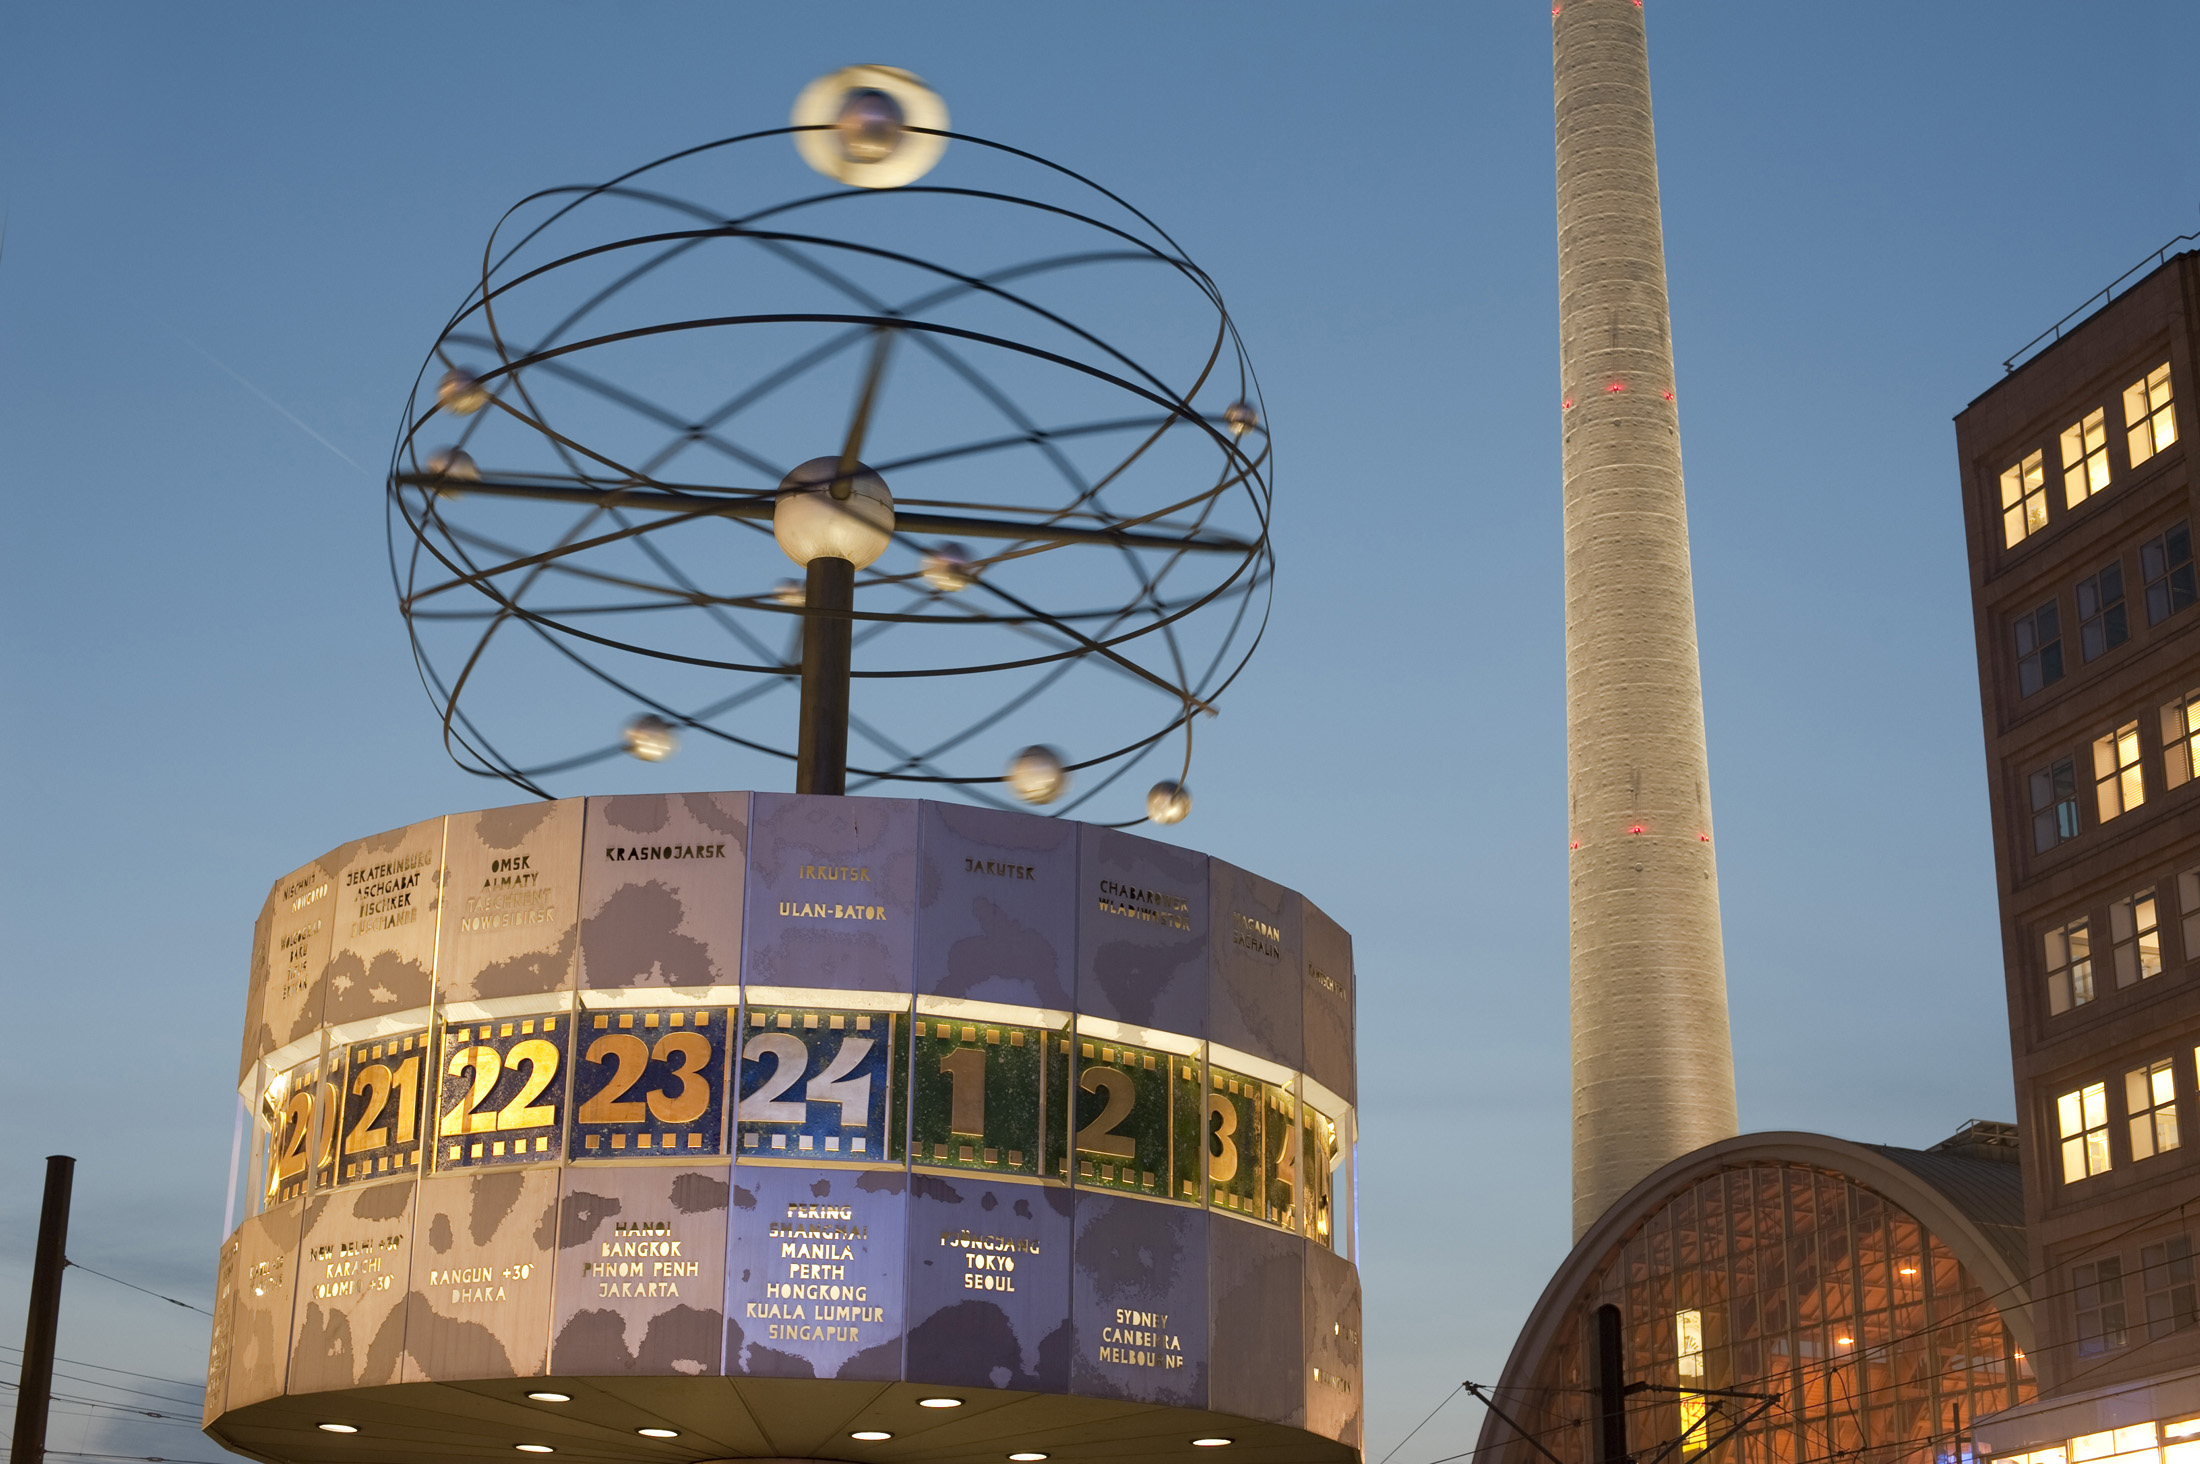 the Weltzeituhr wolrd clock, one of the landmarks in berlins alexanderplatz